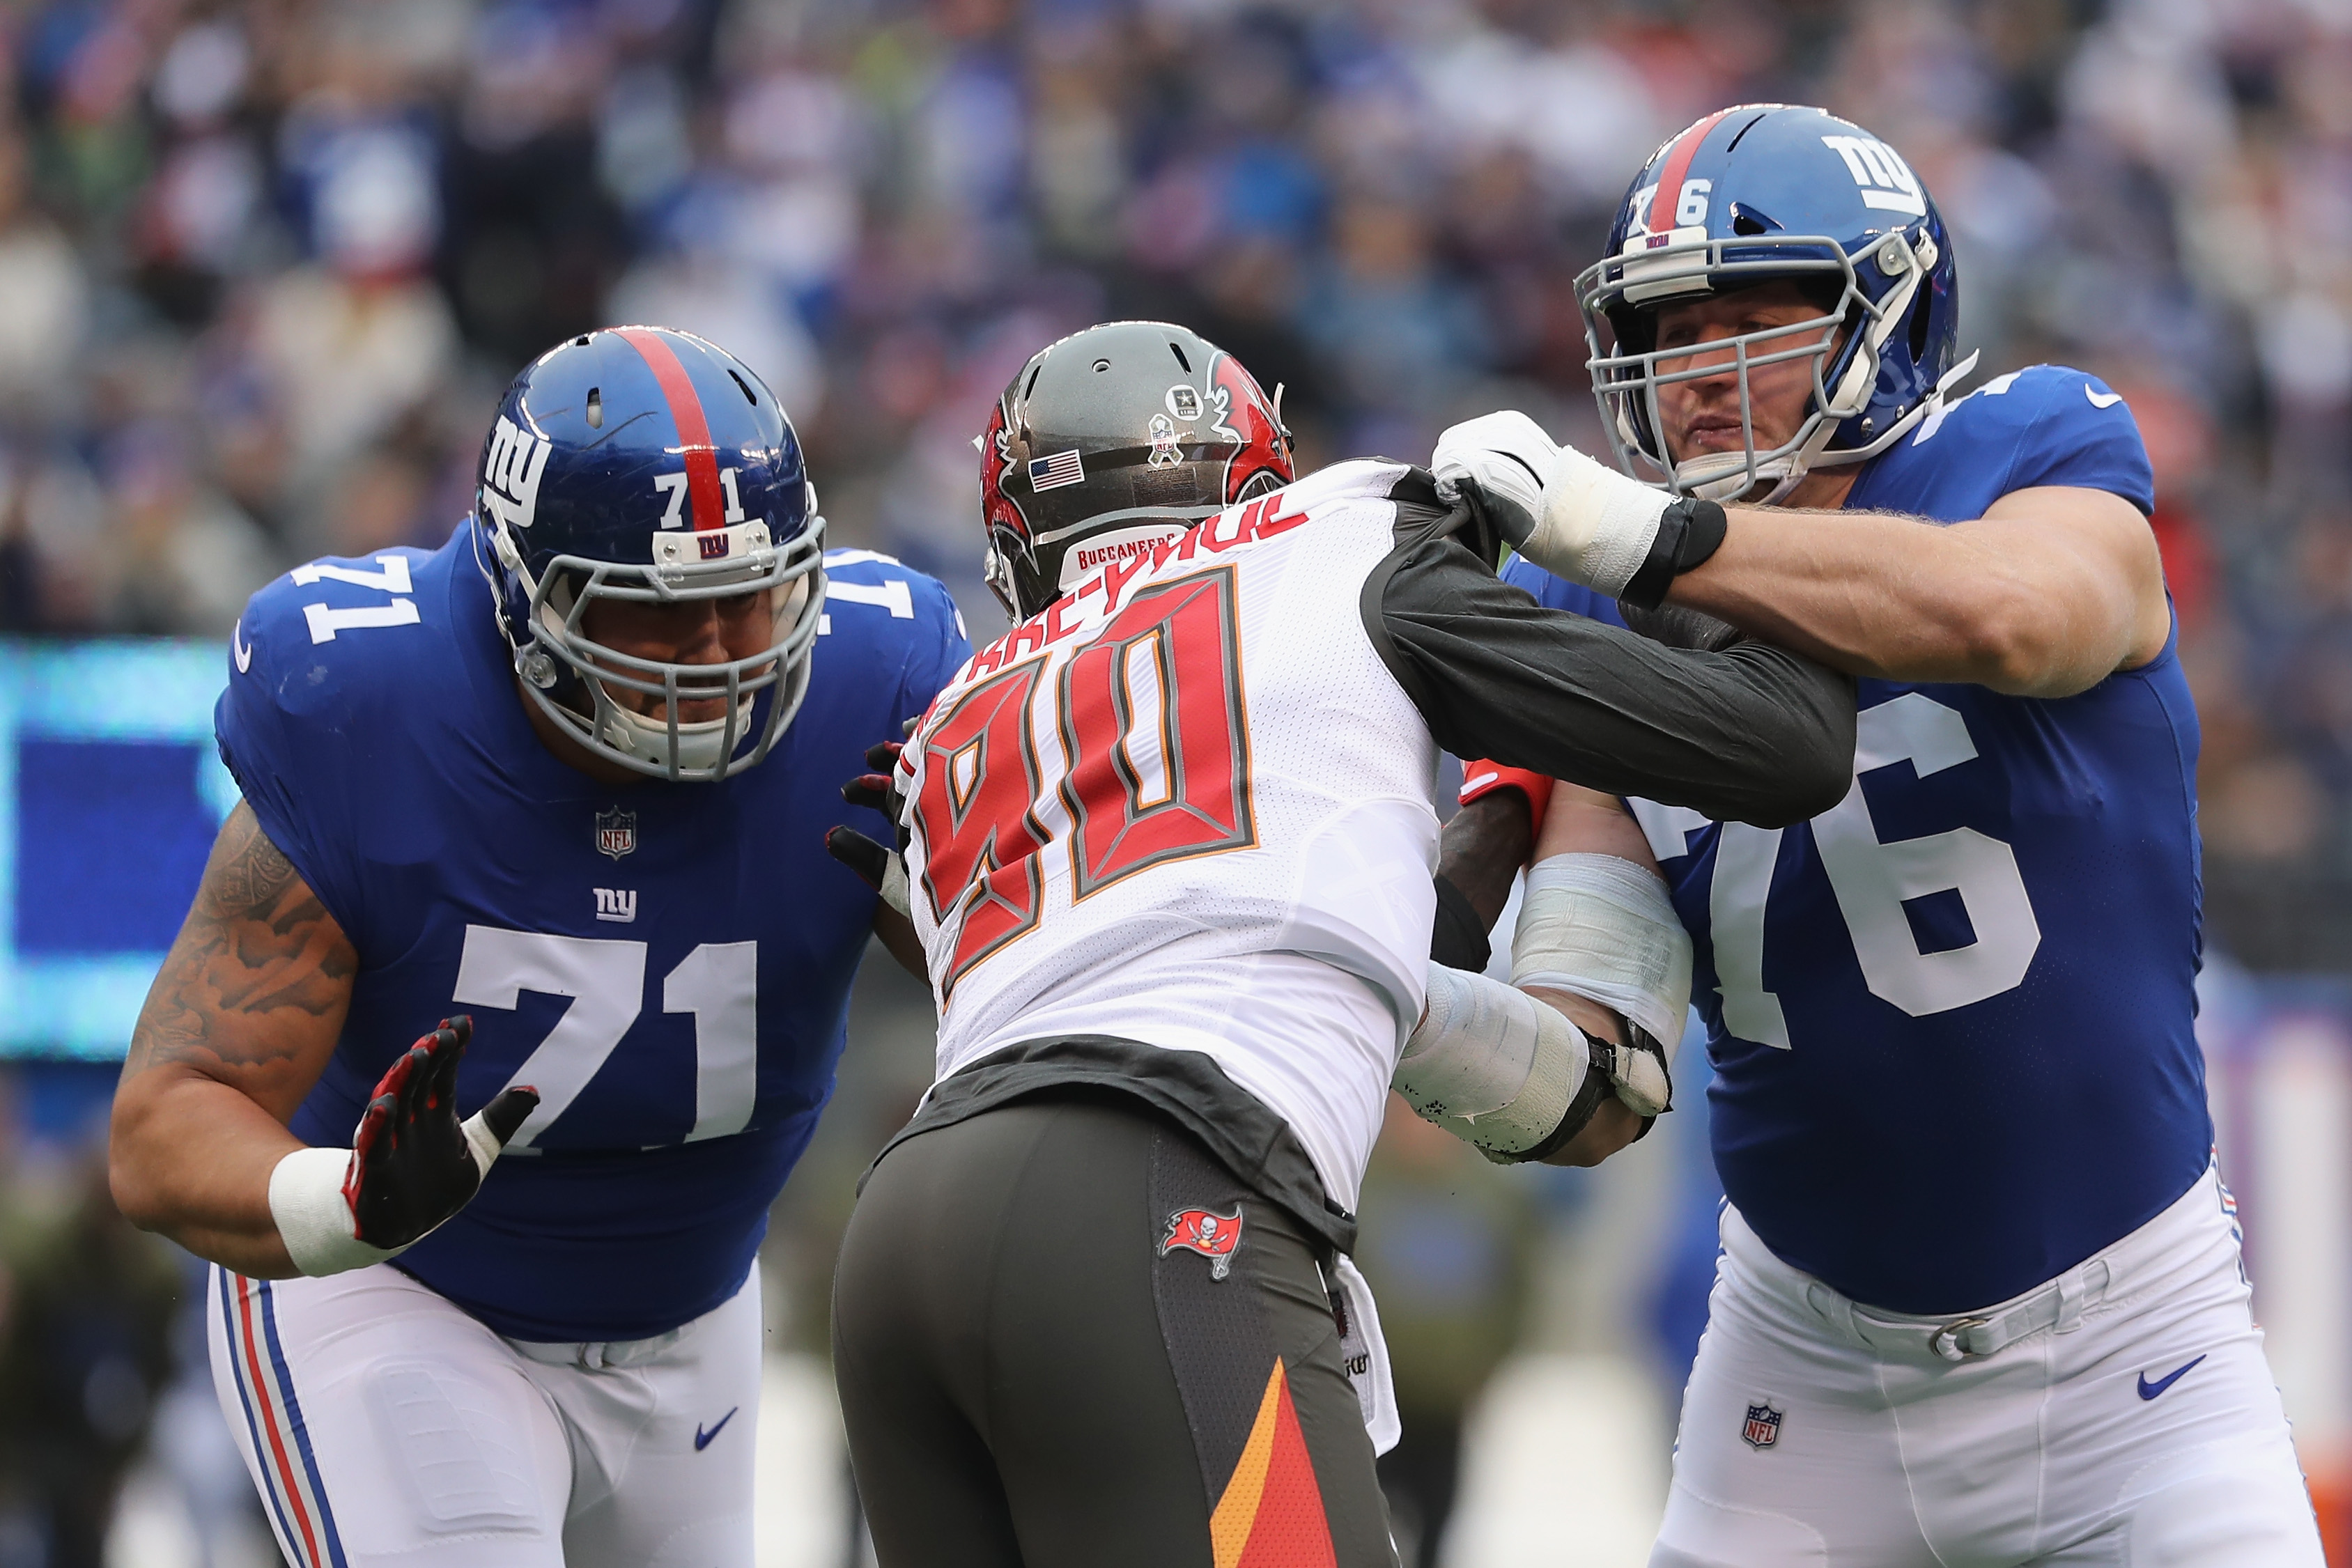 Nate Solder helping to block during an NFL game